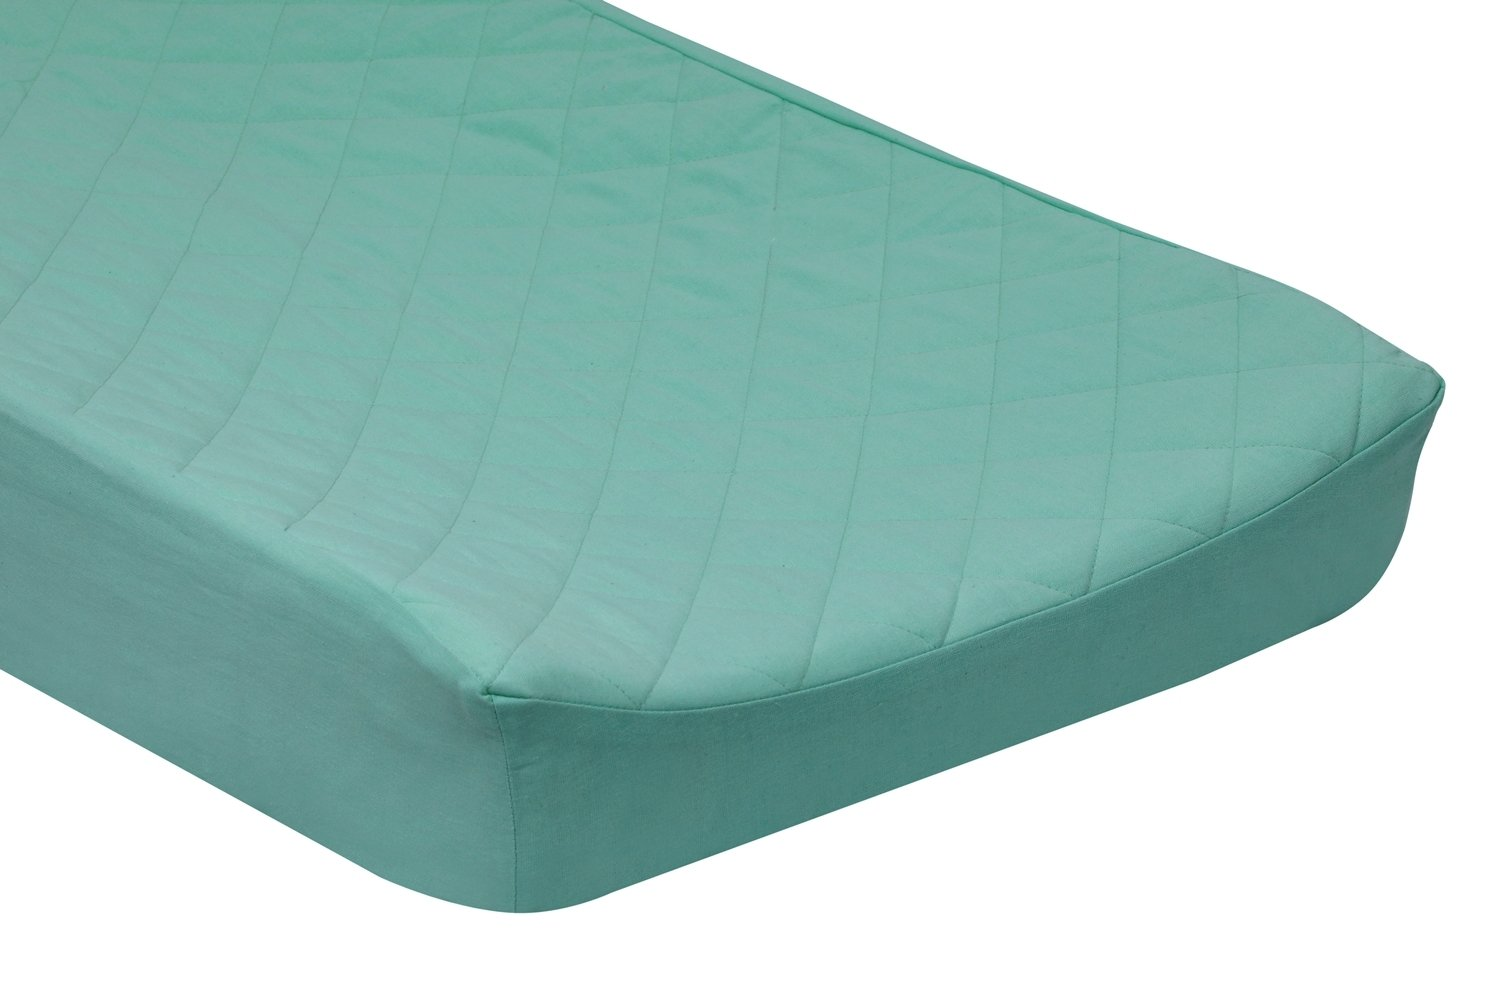 Branded goods Solid Cotton Quilted Changing Pad Fits Contoure Miami Mall Cover Standard -